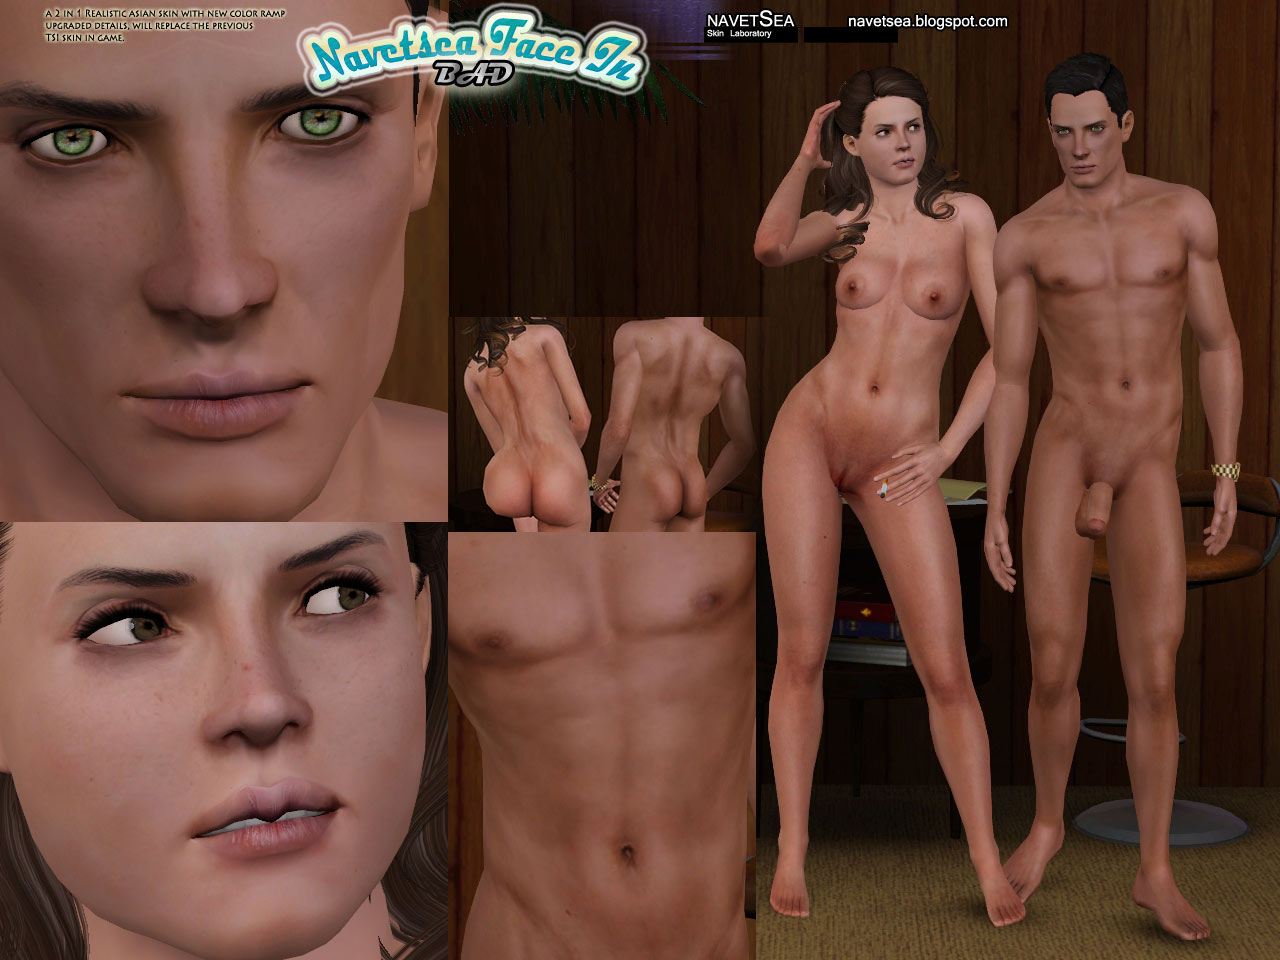 The sims 4 sexuality nude porn videos